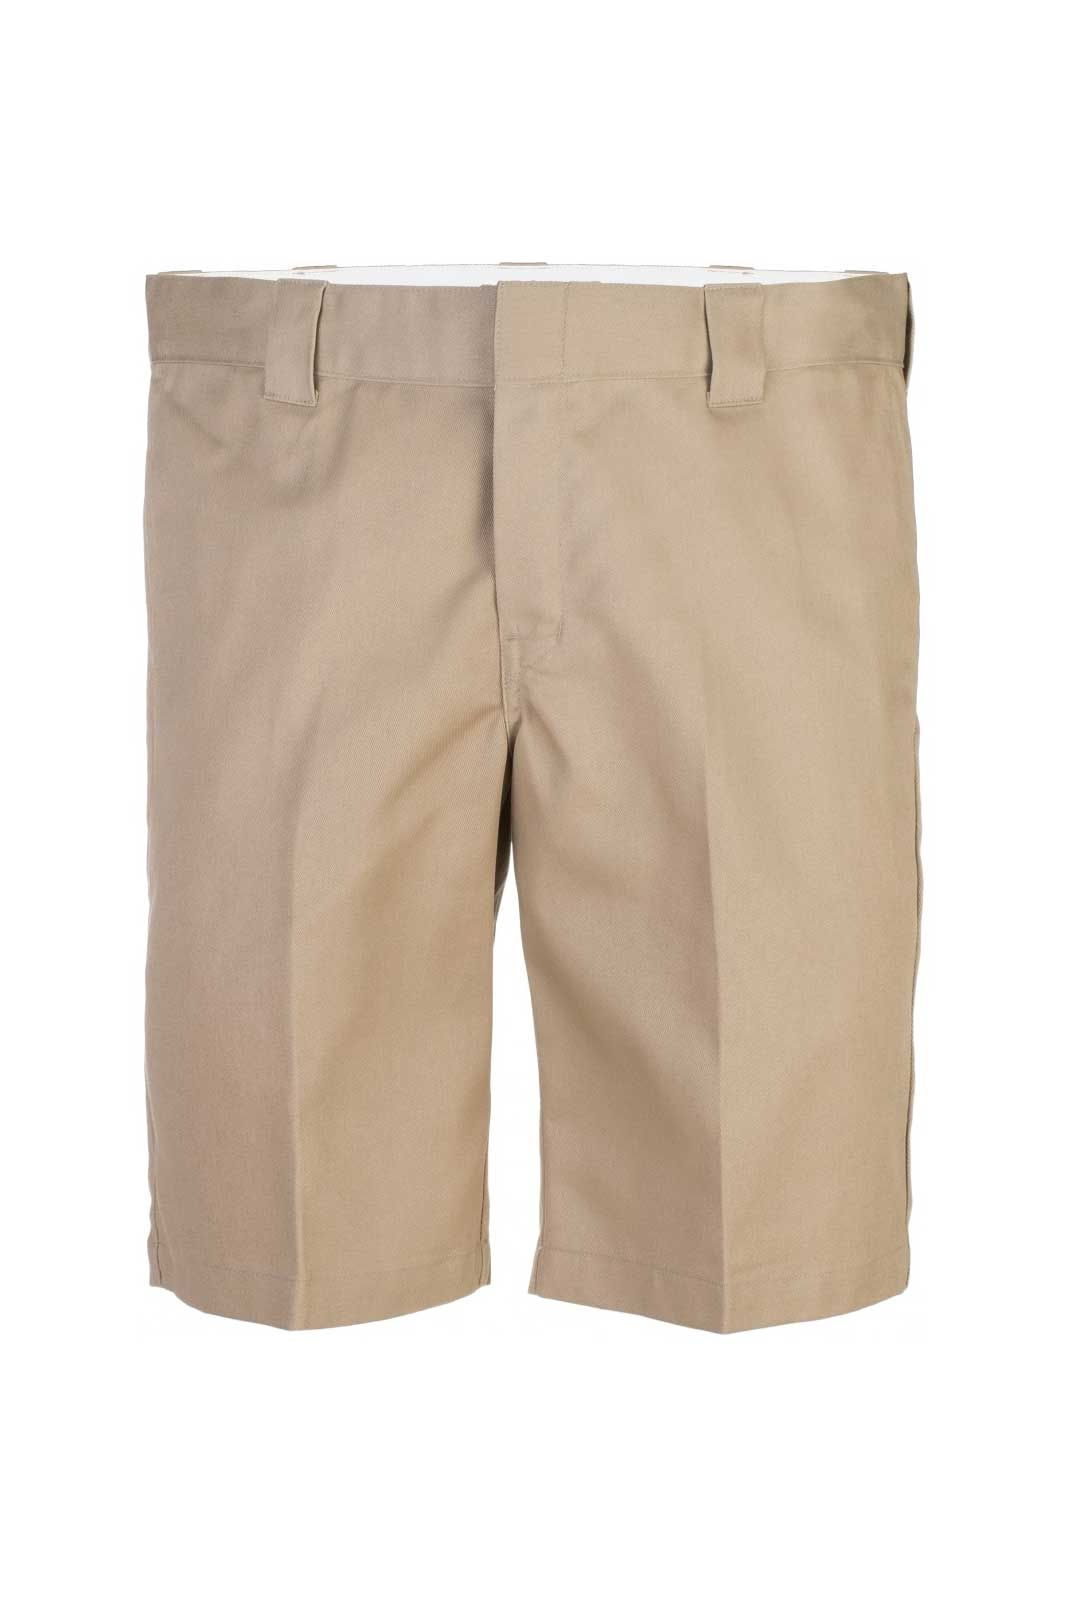 11' Slim Straight Workshorts